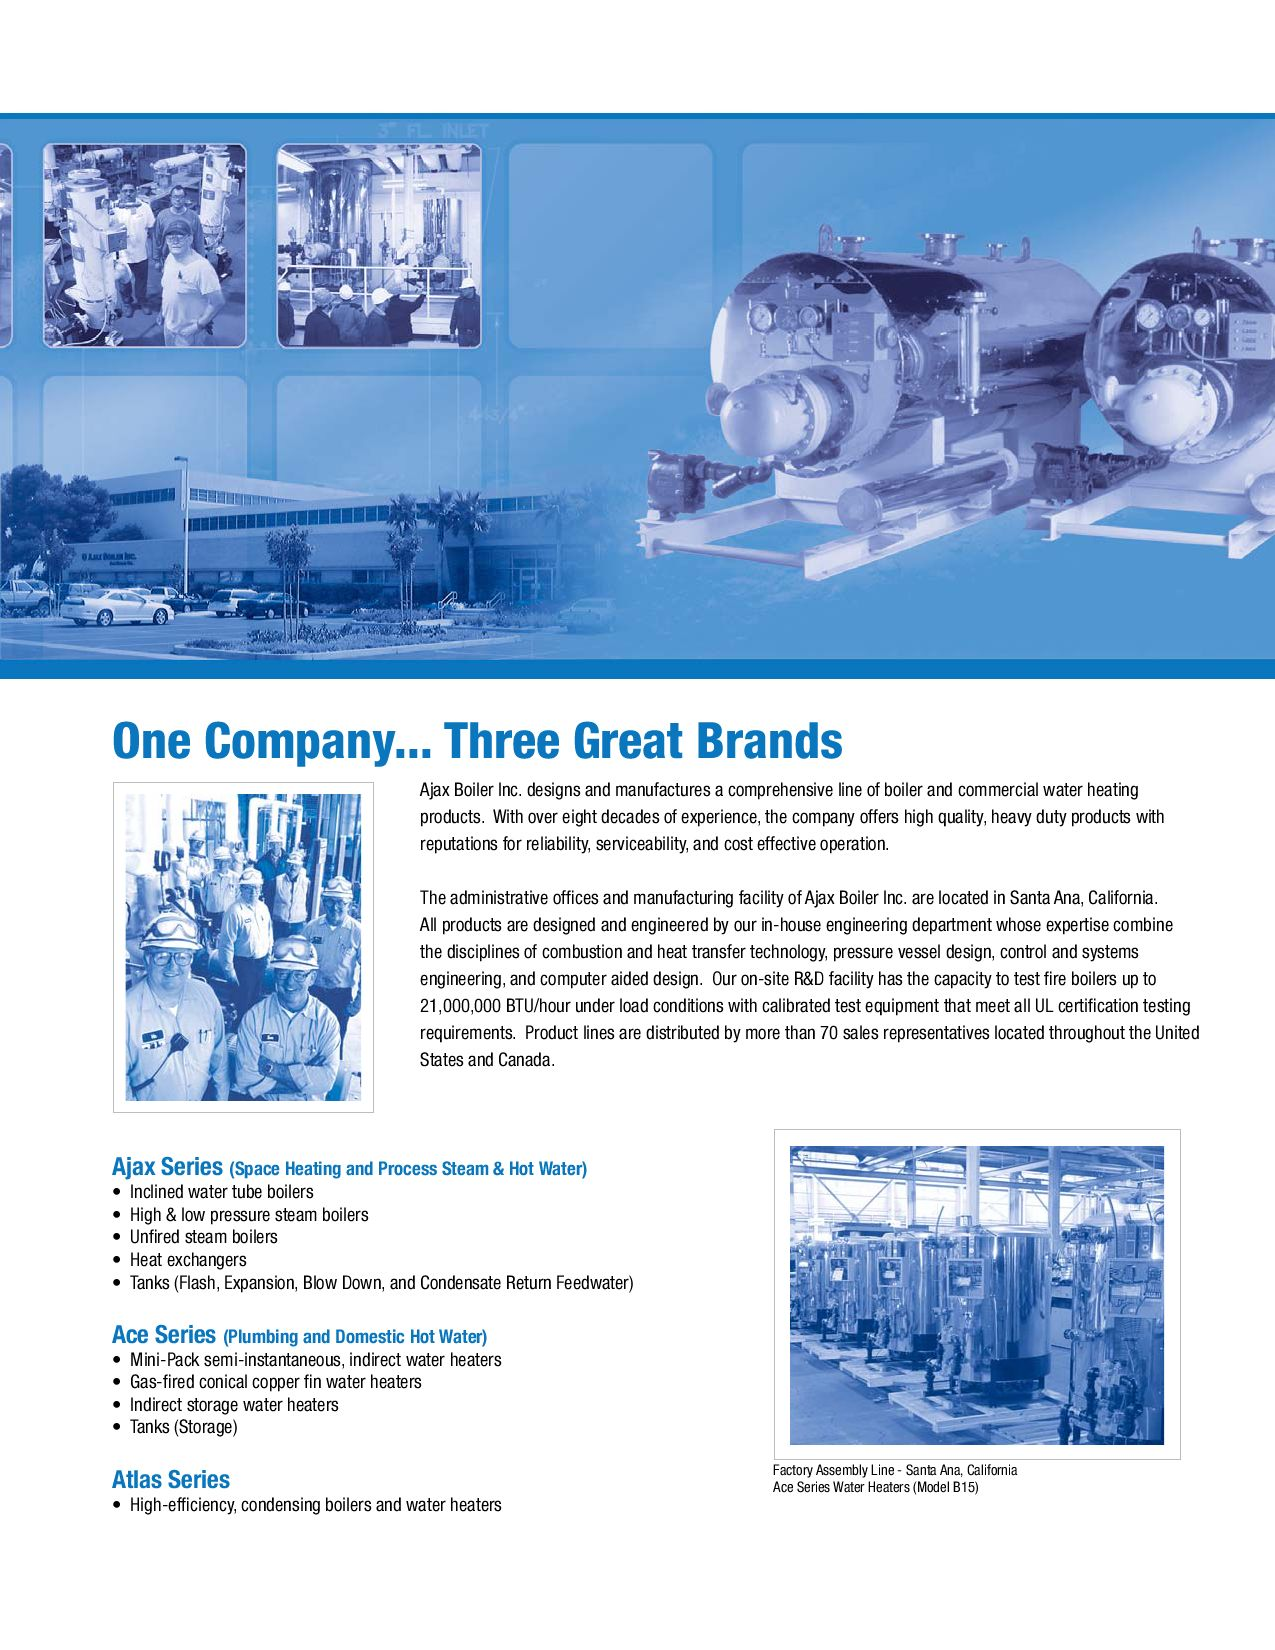 2009 Product Catalog: Ace Series by Ajax Boiler Inc. - issuu